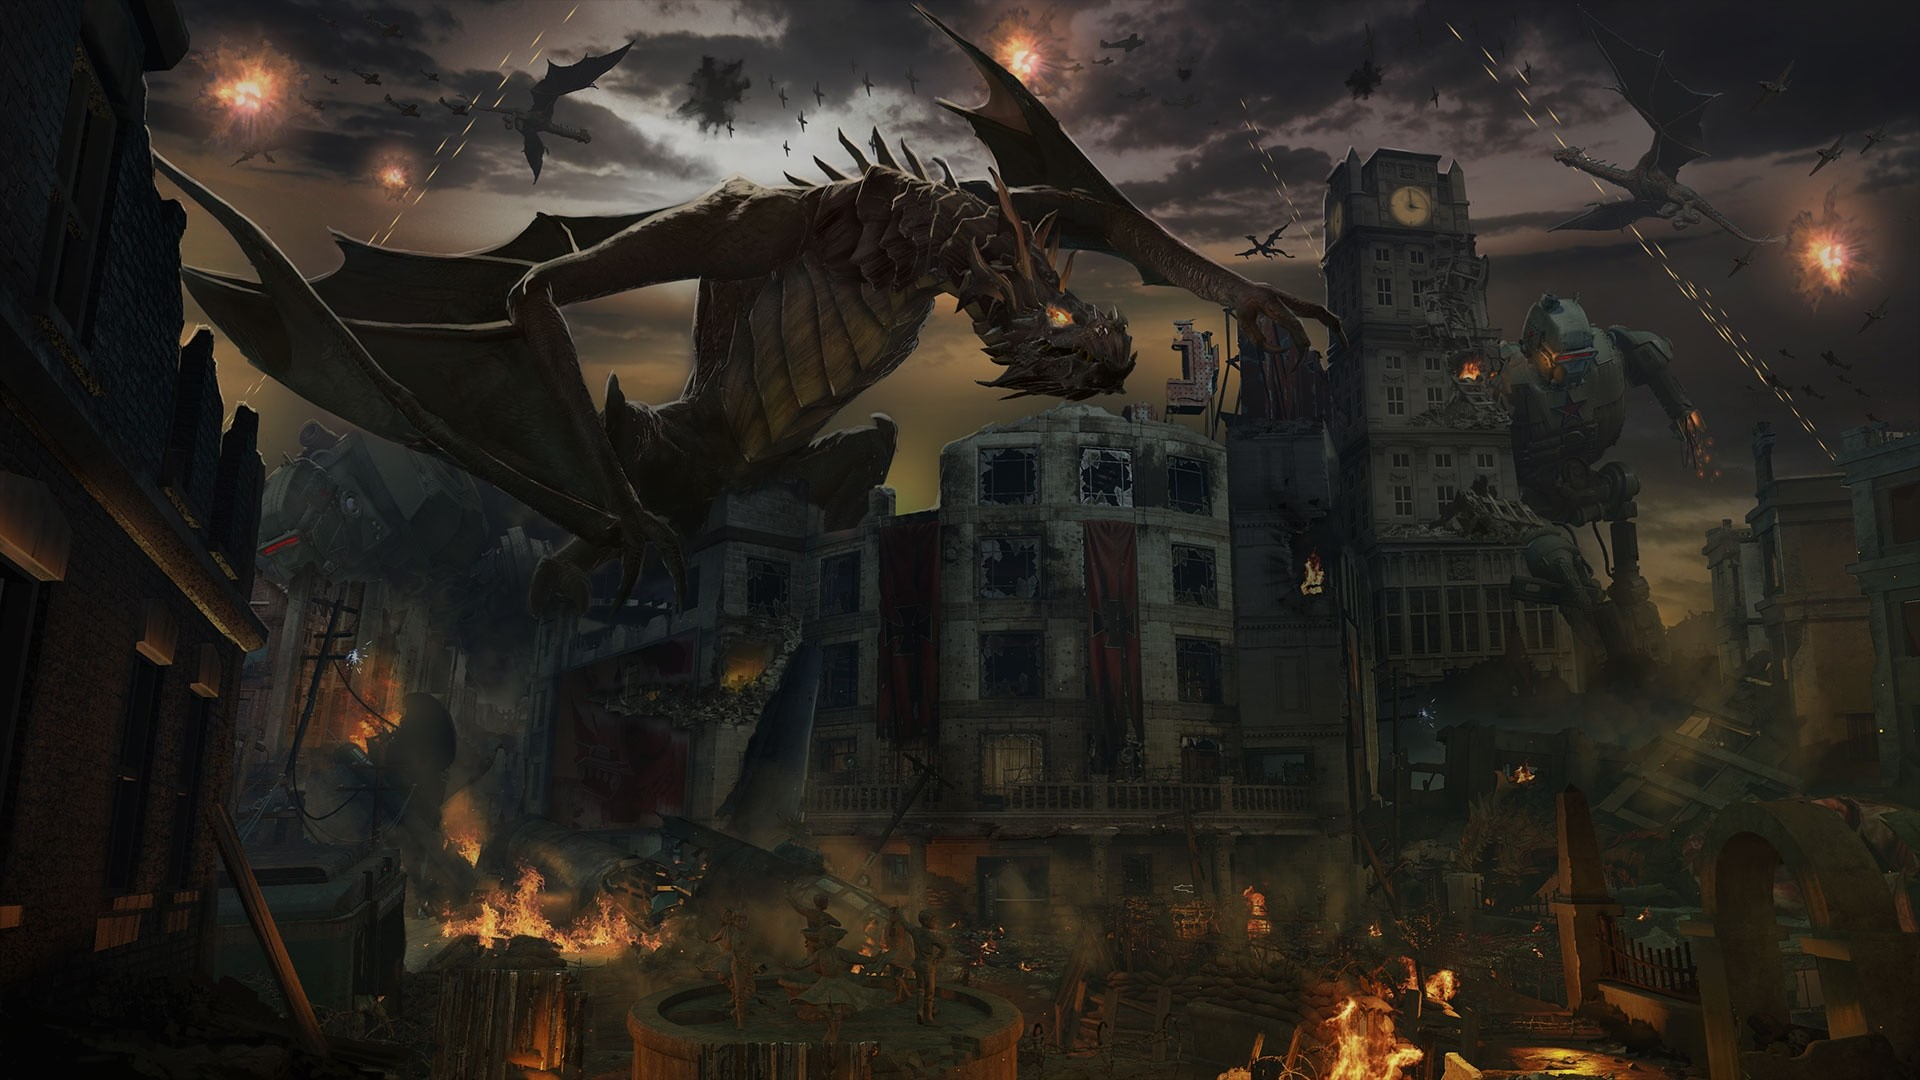 1920x1080 1920 x 1080 Gorod Krovi Wallpaper Need #iPhone #6S #Plus #Wallpaper/